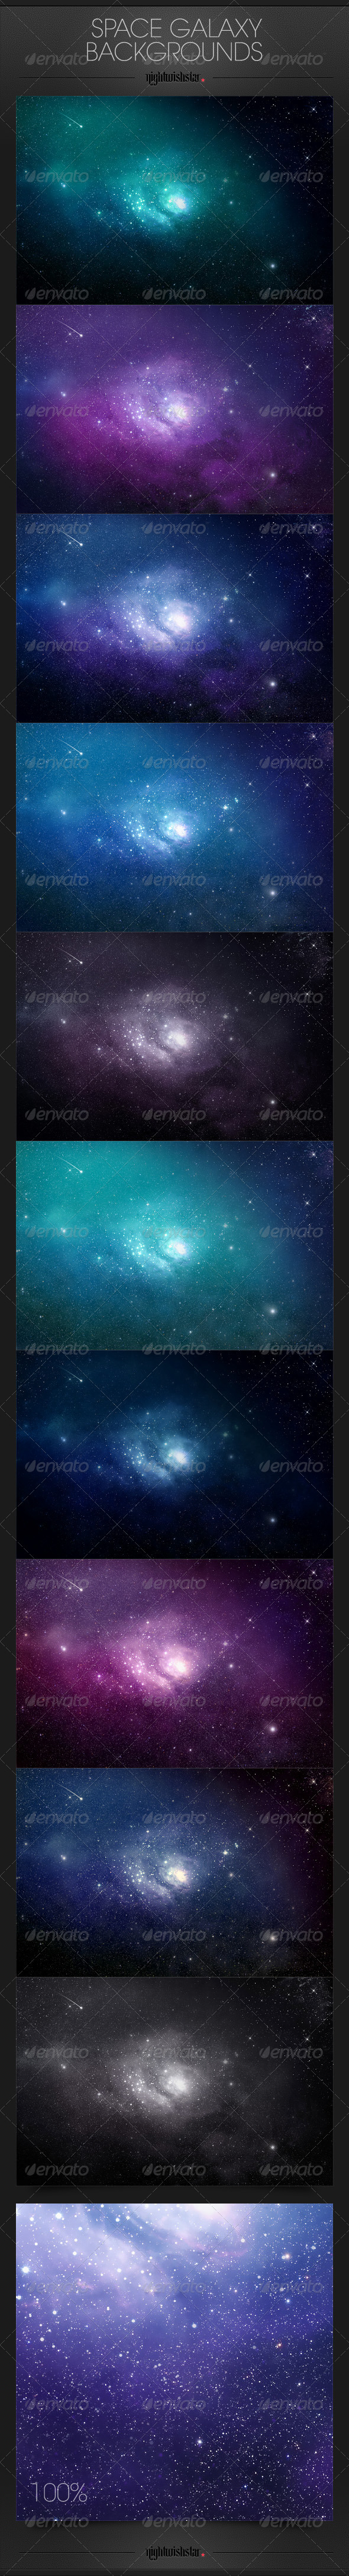 GraphicRiver Space Galaxy Backgrounds 6773959